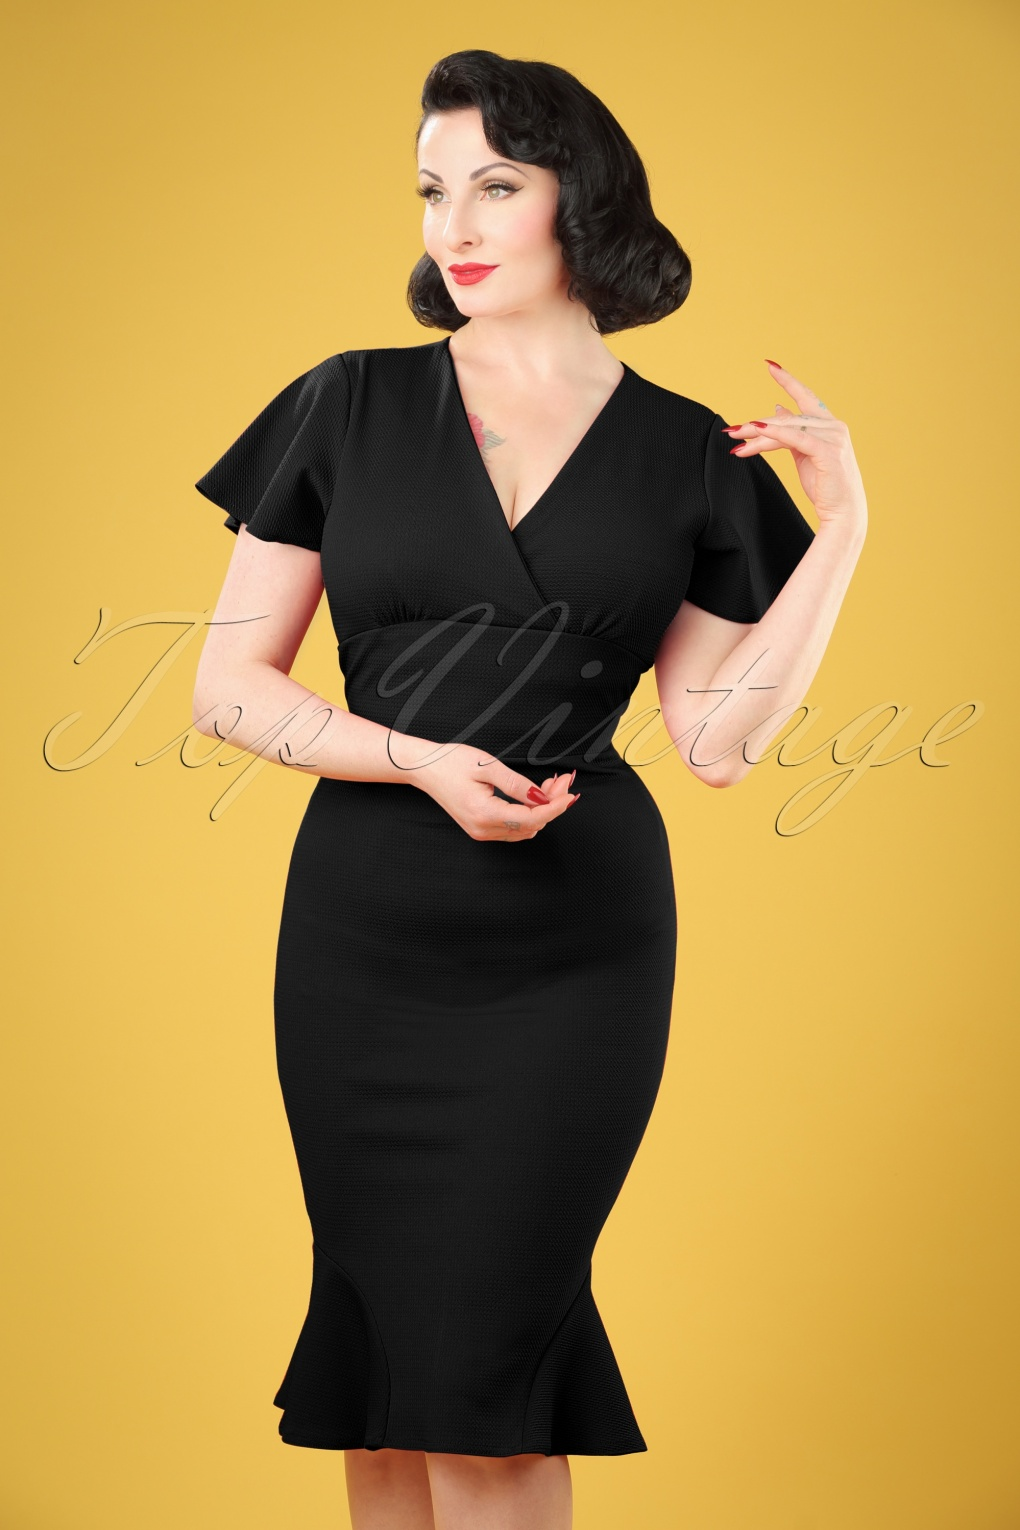 Vintage Inspired Cocktail Dresses, Party Dresses 50s Peggy Waterfall Pencil Dress in Black £48.25 AT vintagedancer.com